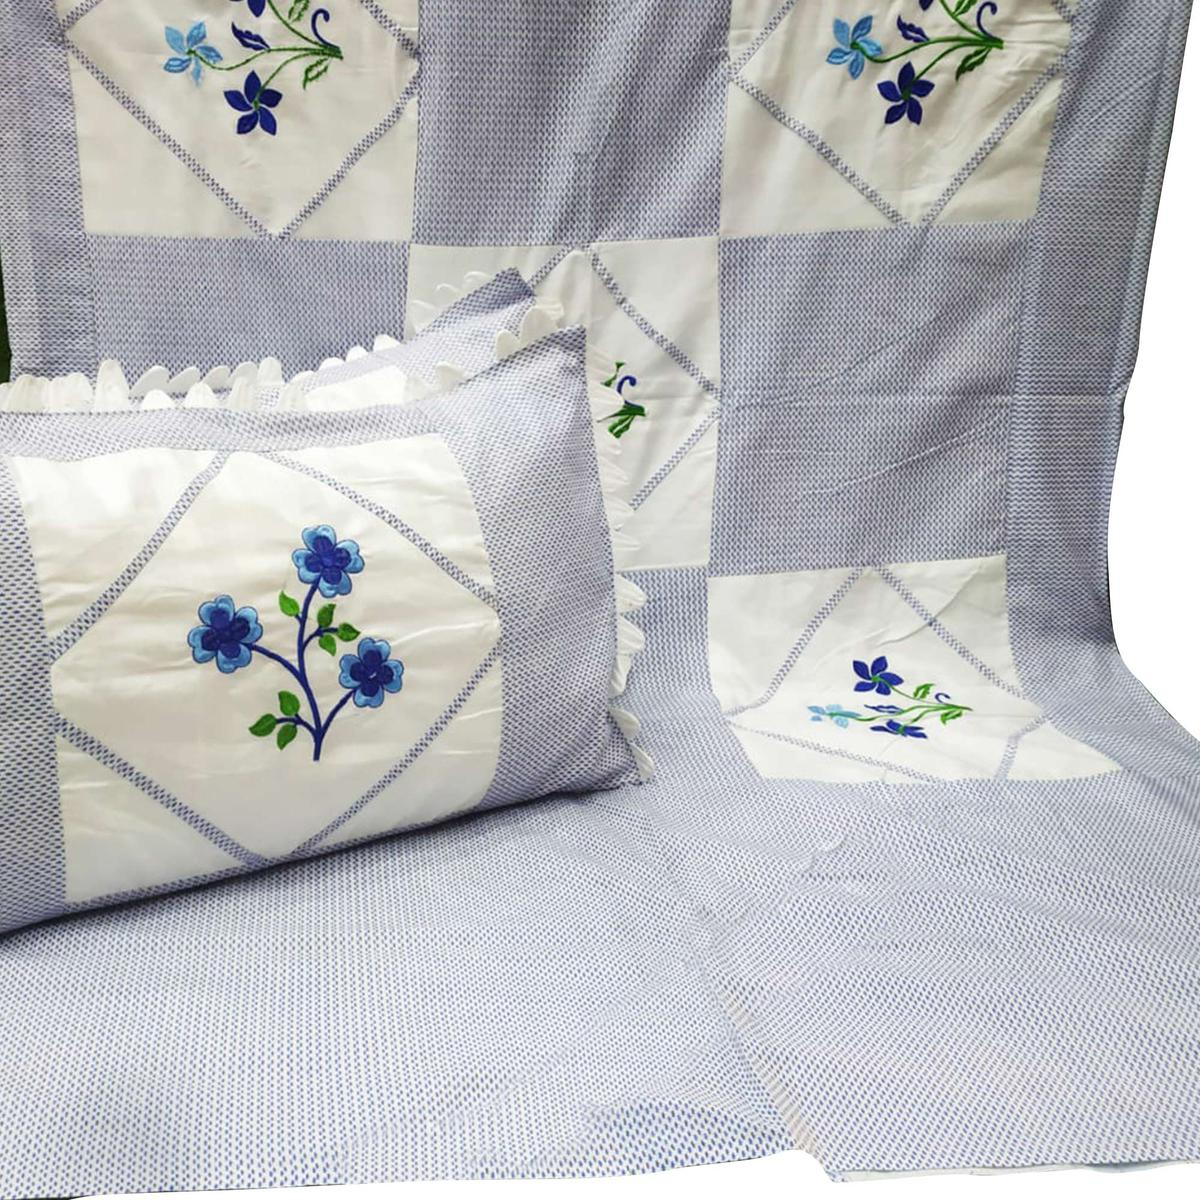 Adirav - Exotic Blue Colored Embroidered-Patchwork Cotton Bedsheet With 2 Pillow Cover